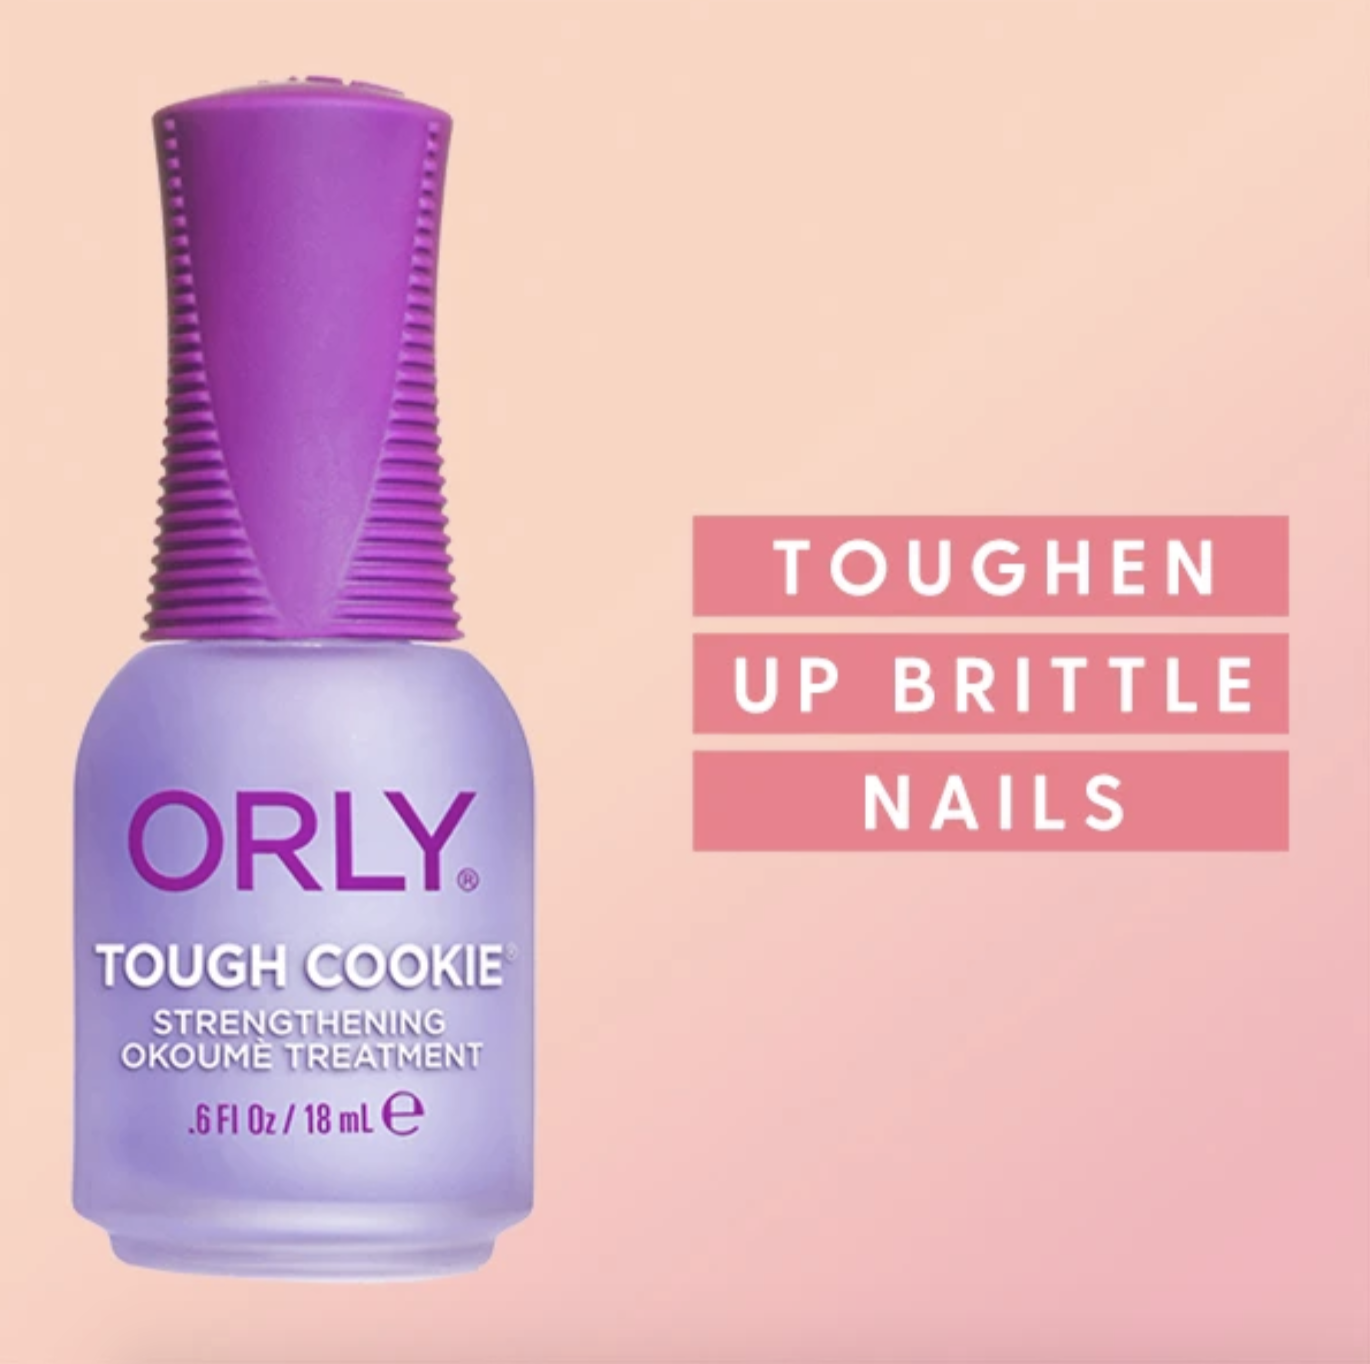 Purple bottle of Orly's Tough Cookie